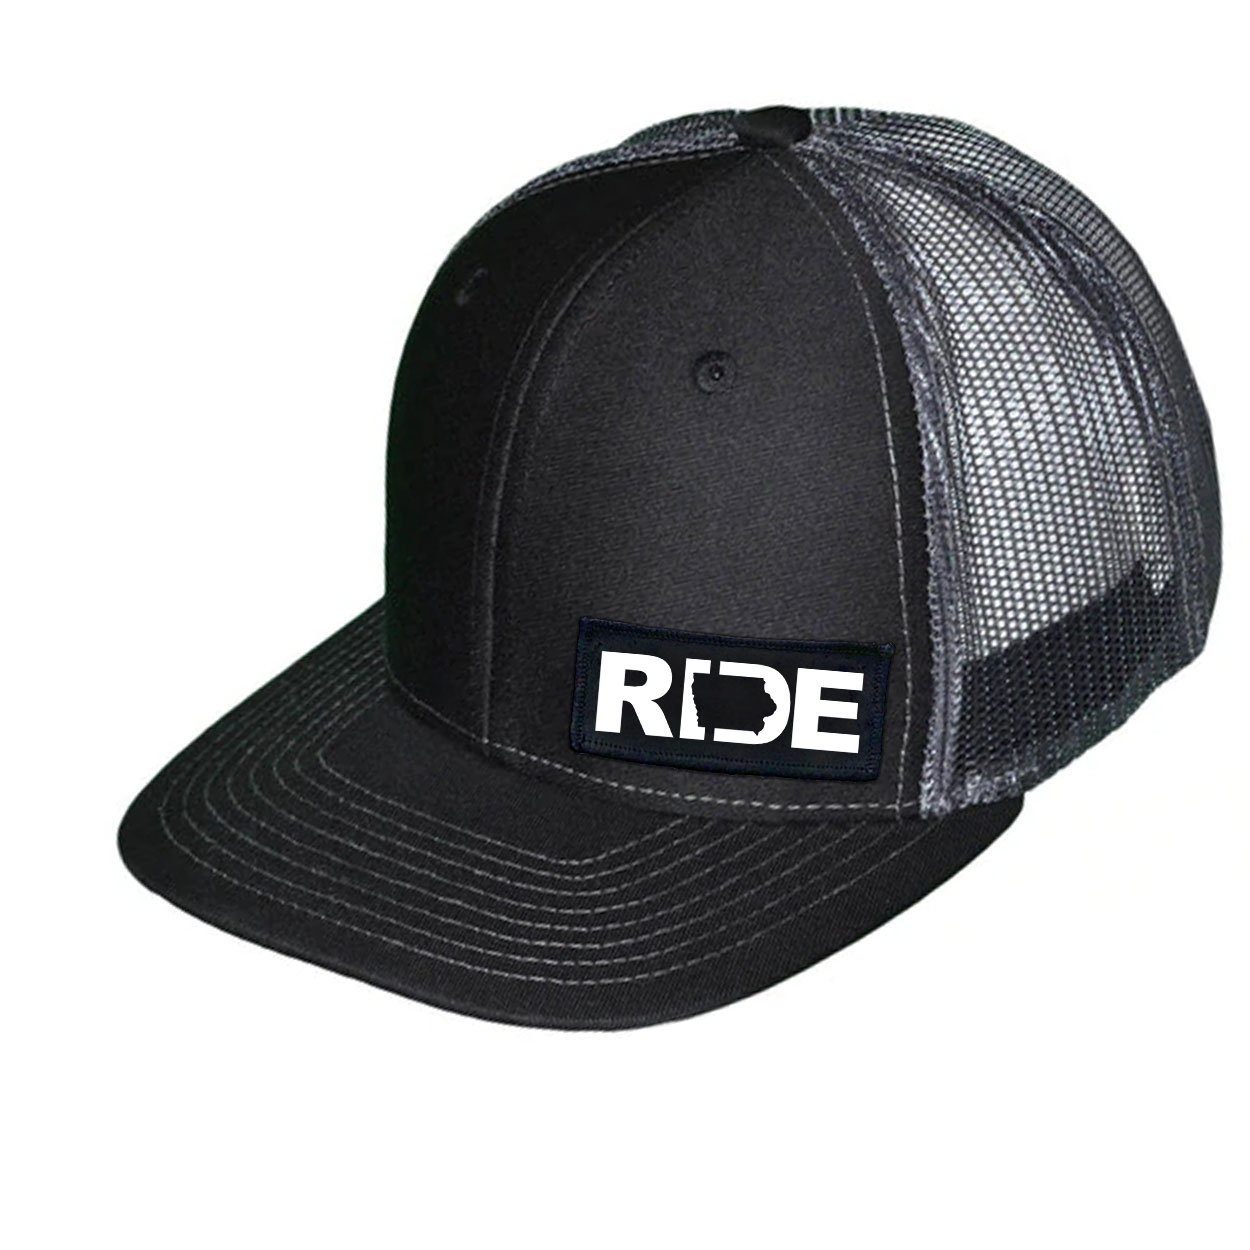 Ride Iowa Night Out Woven Patch Snapback Trucker Hat Black/Dark Gray (White Logo)